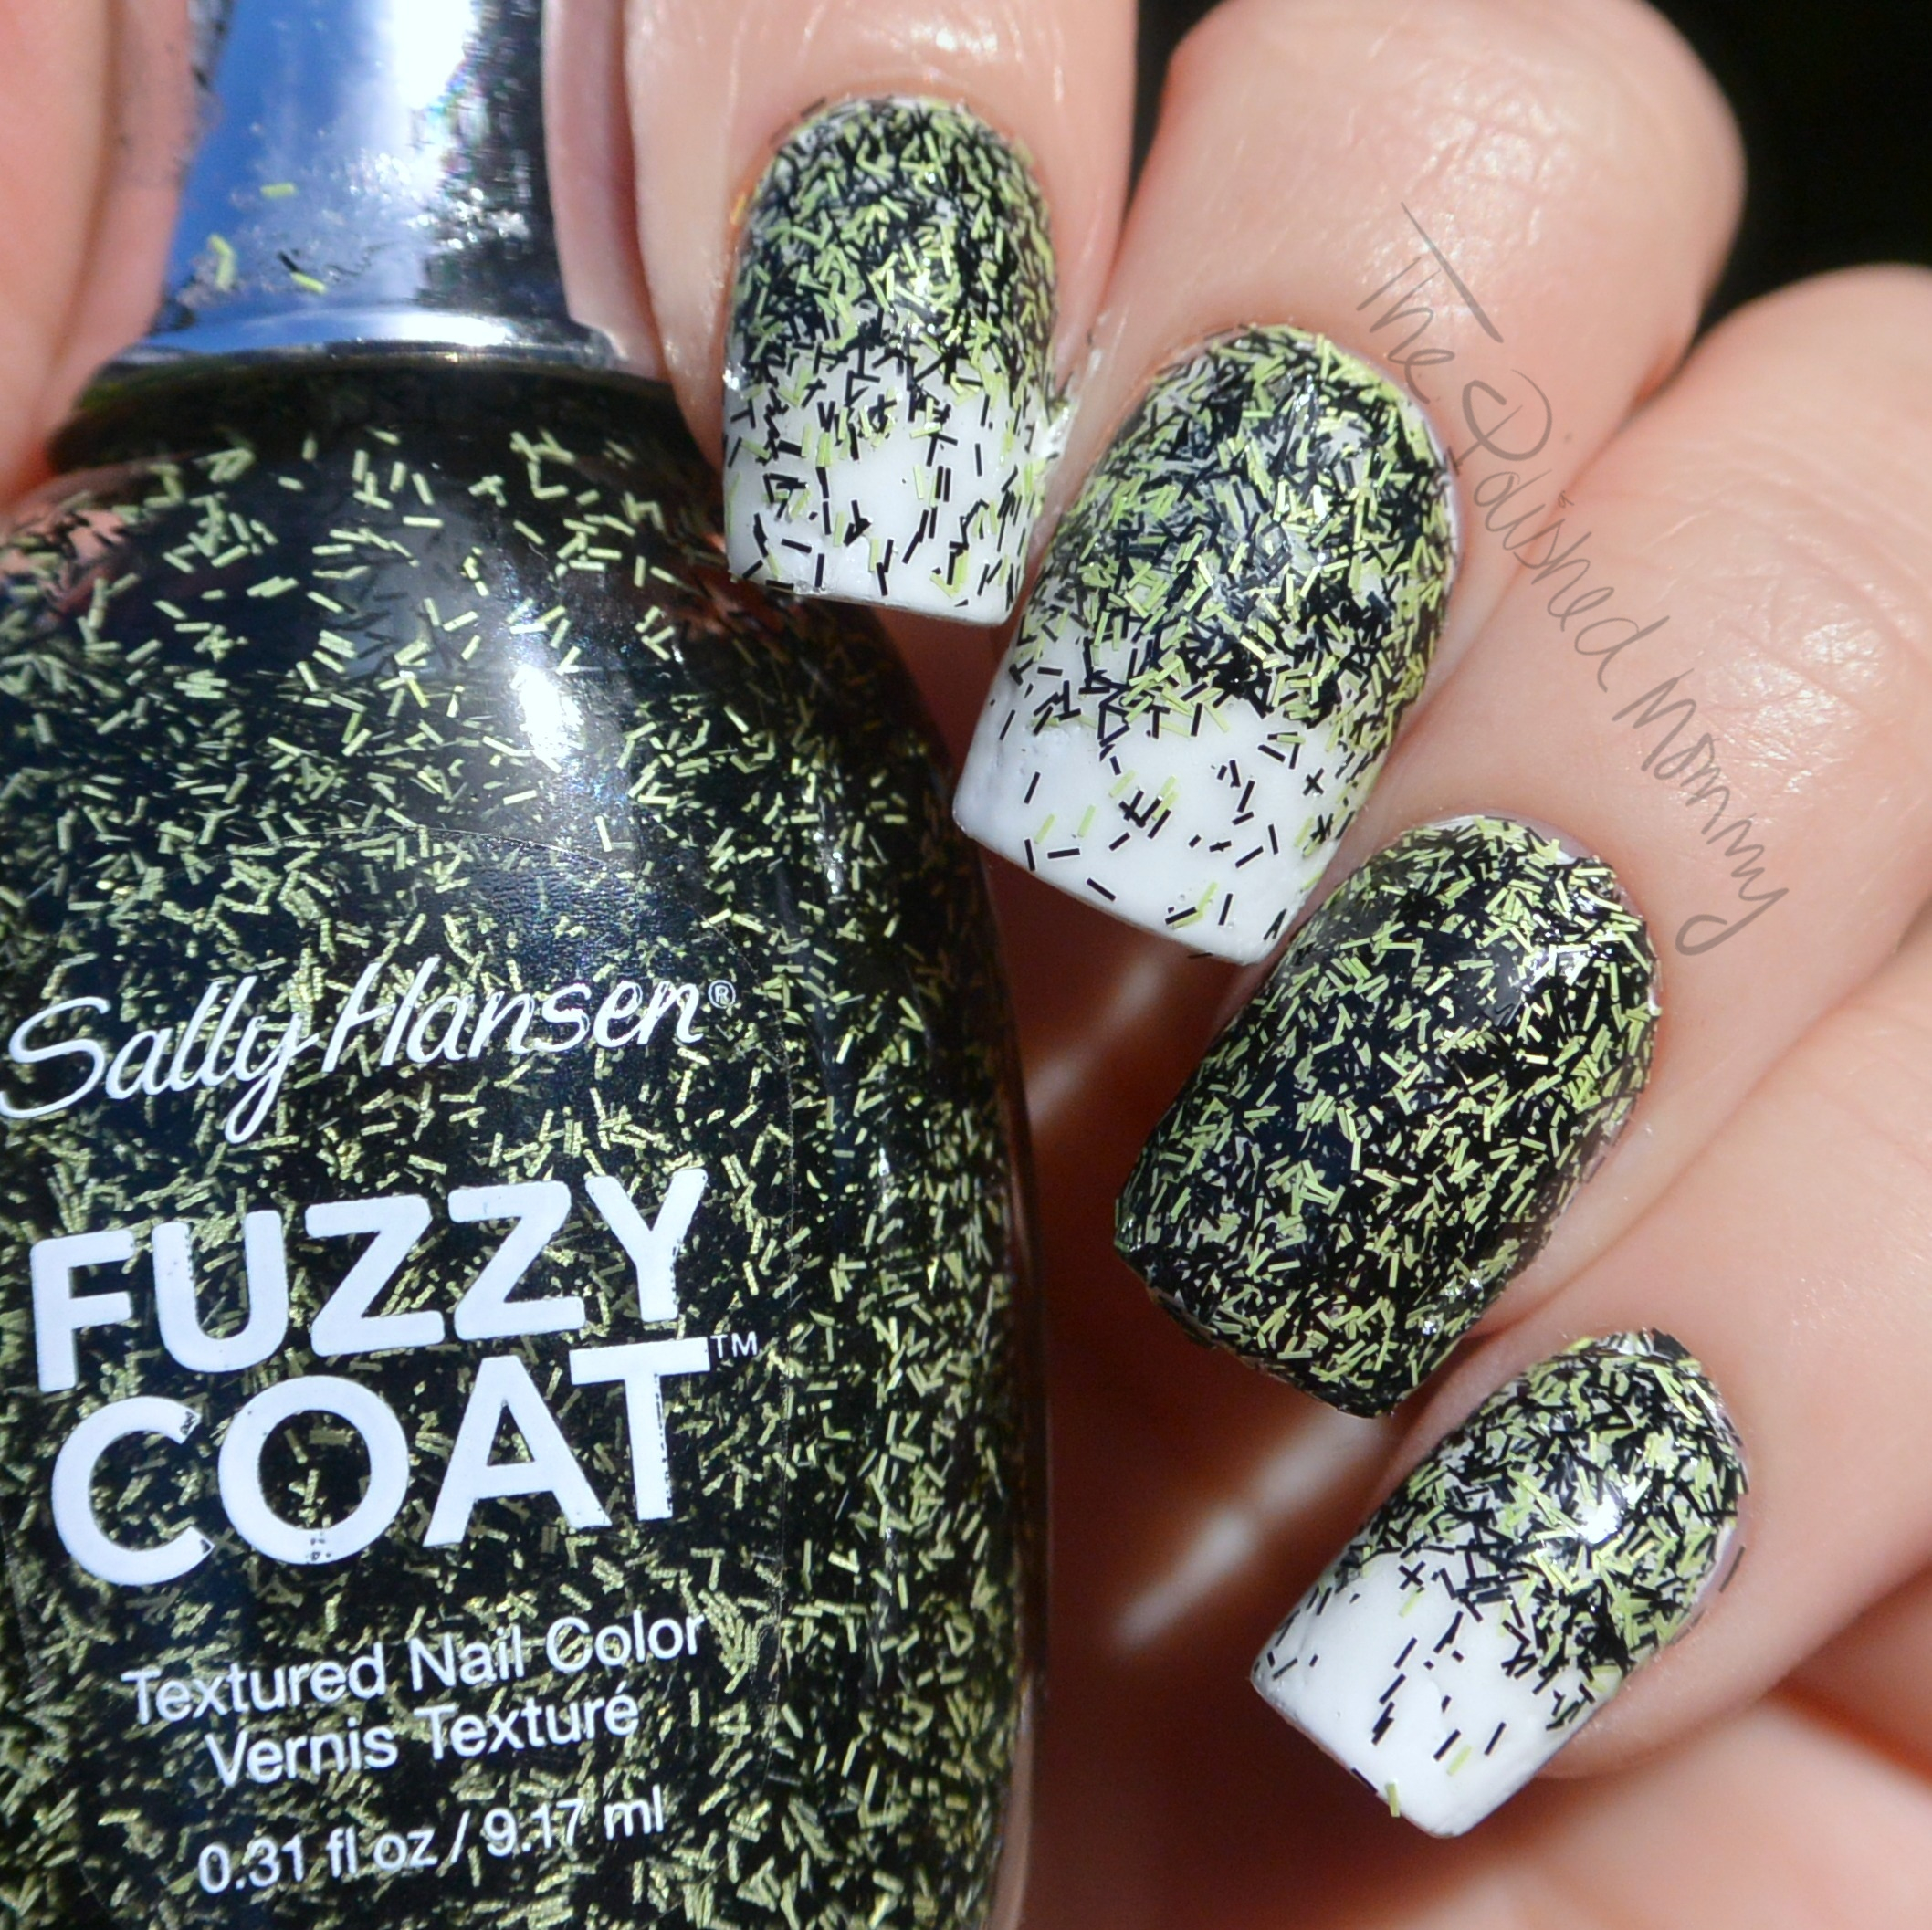 Sally Hansen Halloween 2104: Fuzzy Coat Collection - The Polished Mommy